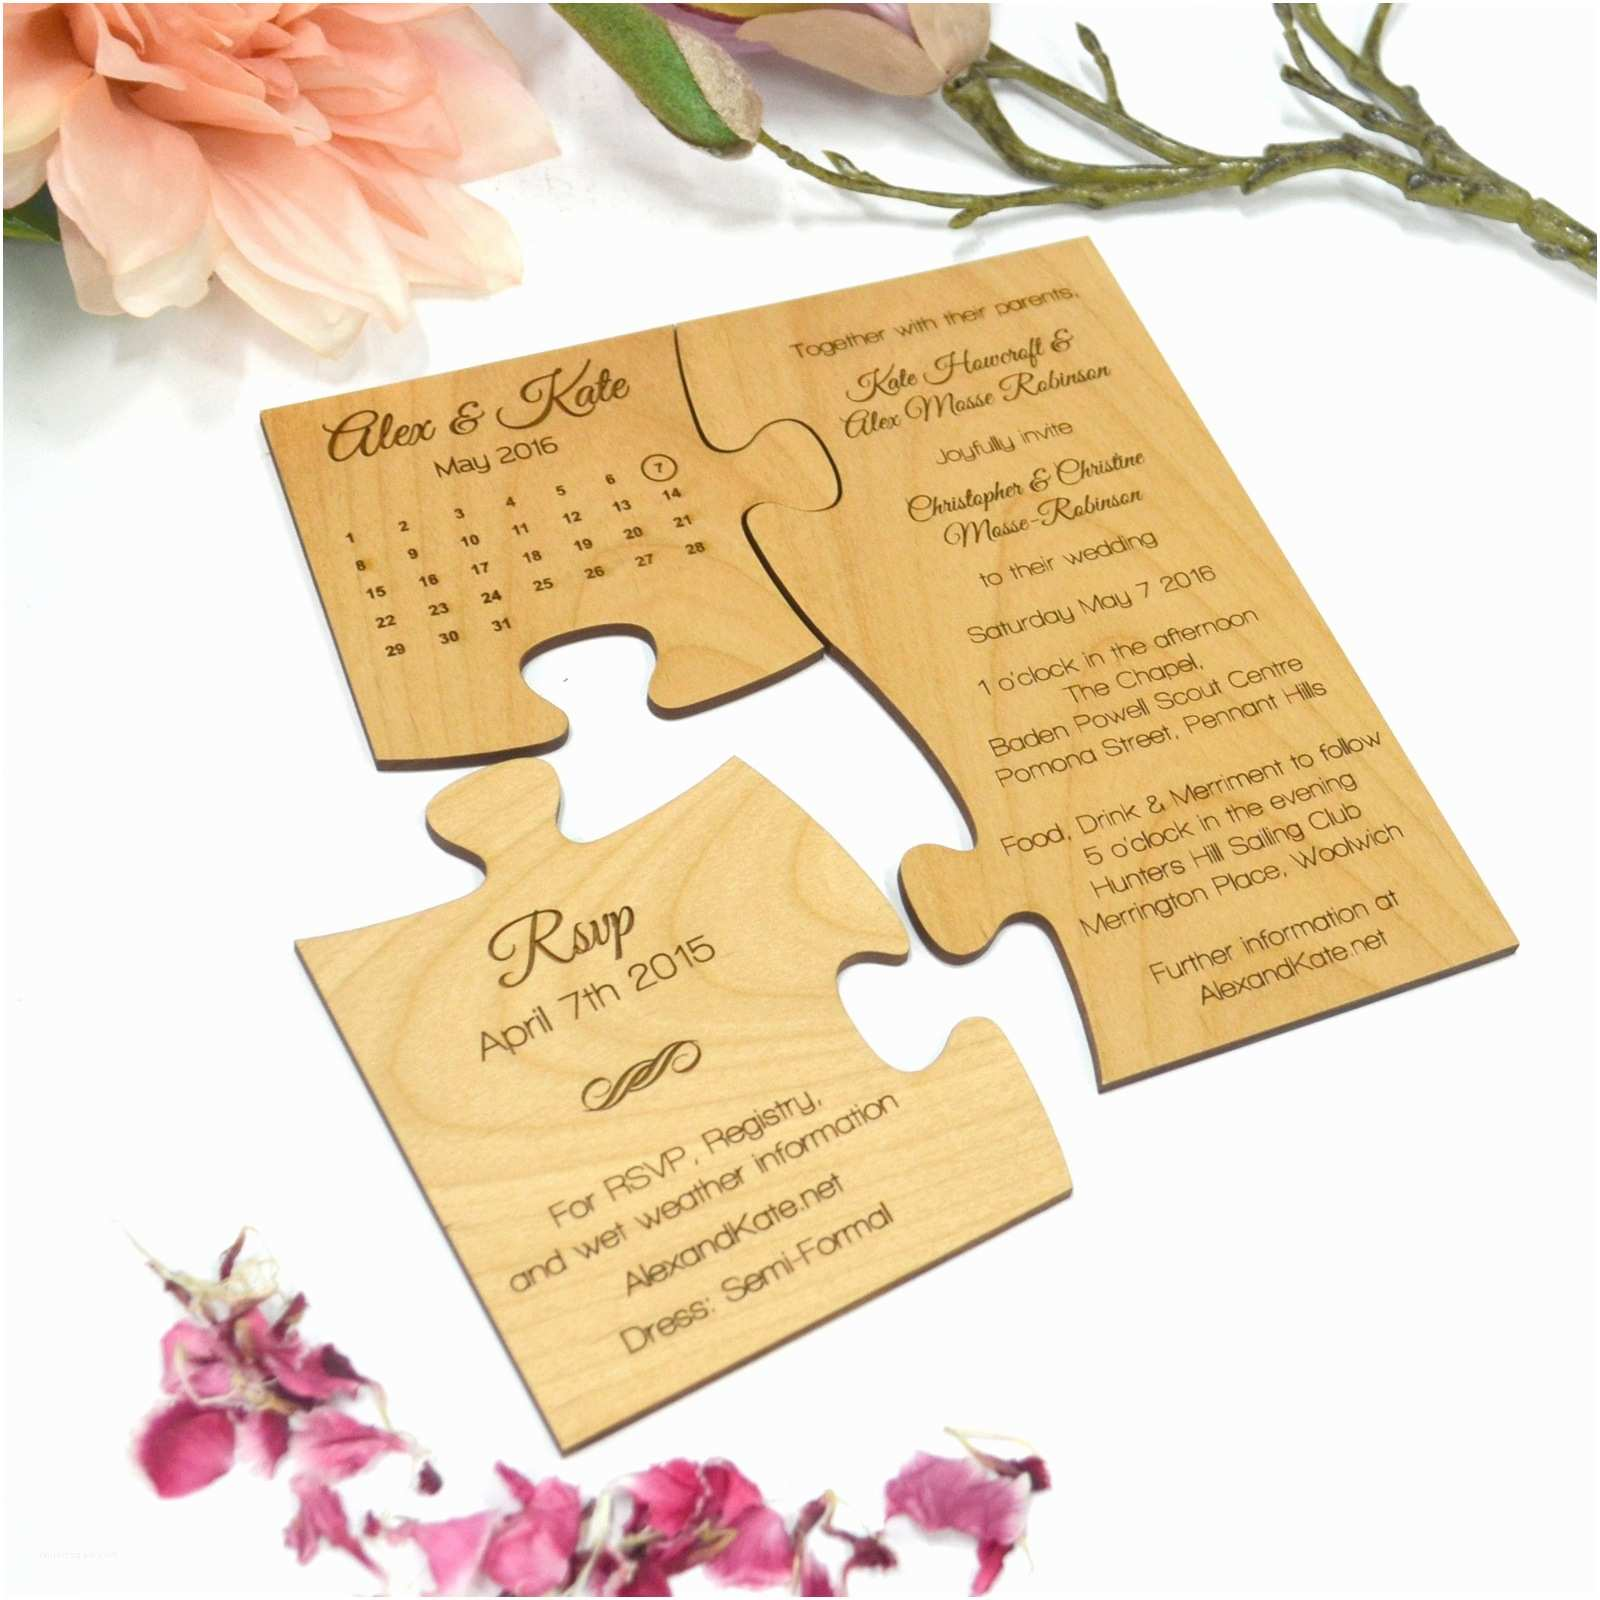 Evite Wedding Invitations Engraved Wooden Puzzle Wedding Invitation with Save the